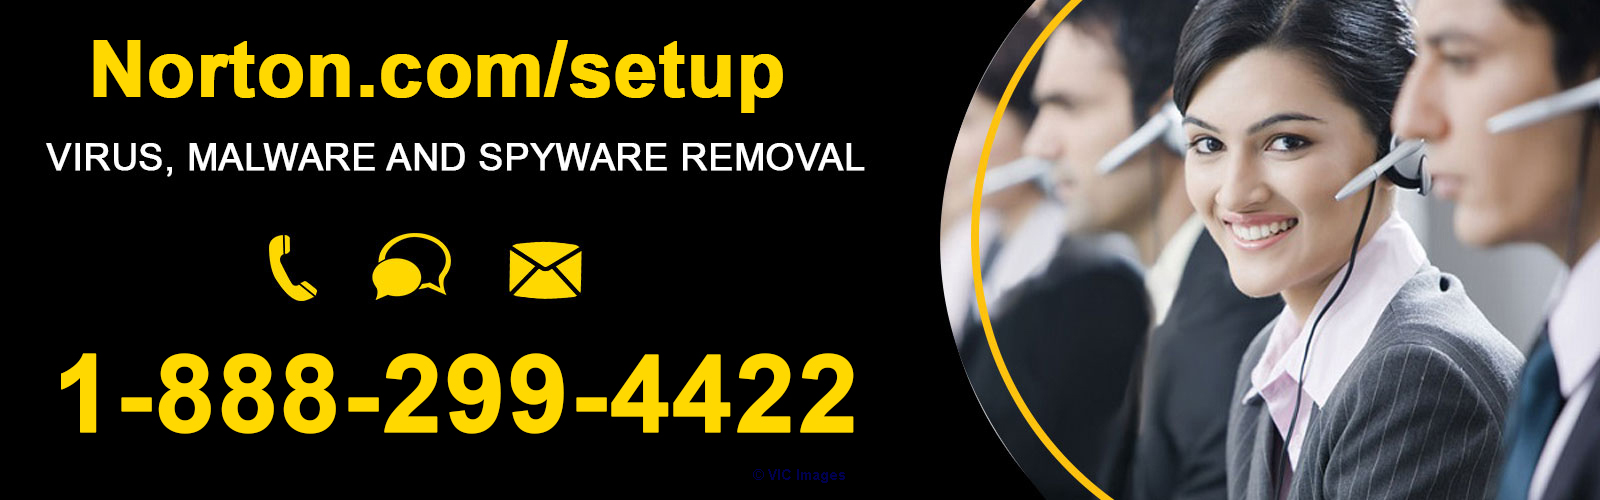 Secure| Norton.com/setup product key|Norton Setup with Product Key|18 calgary